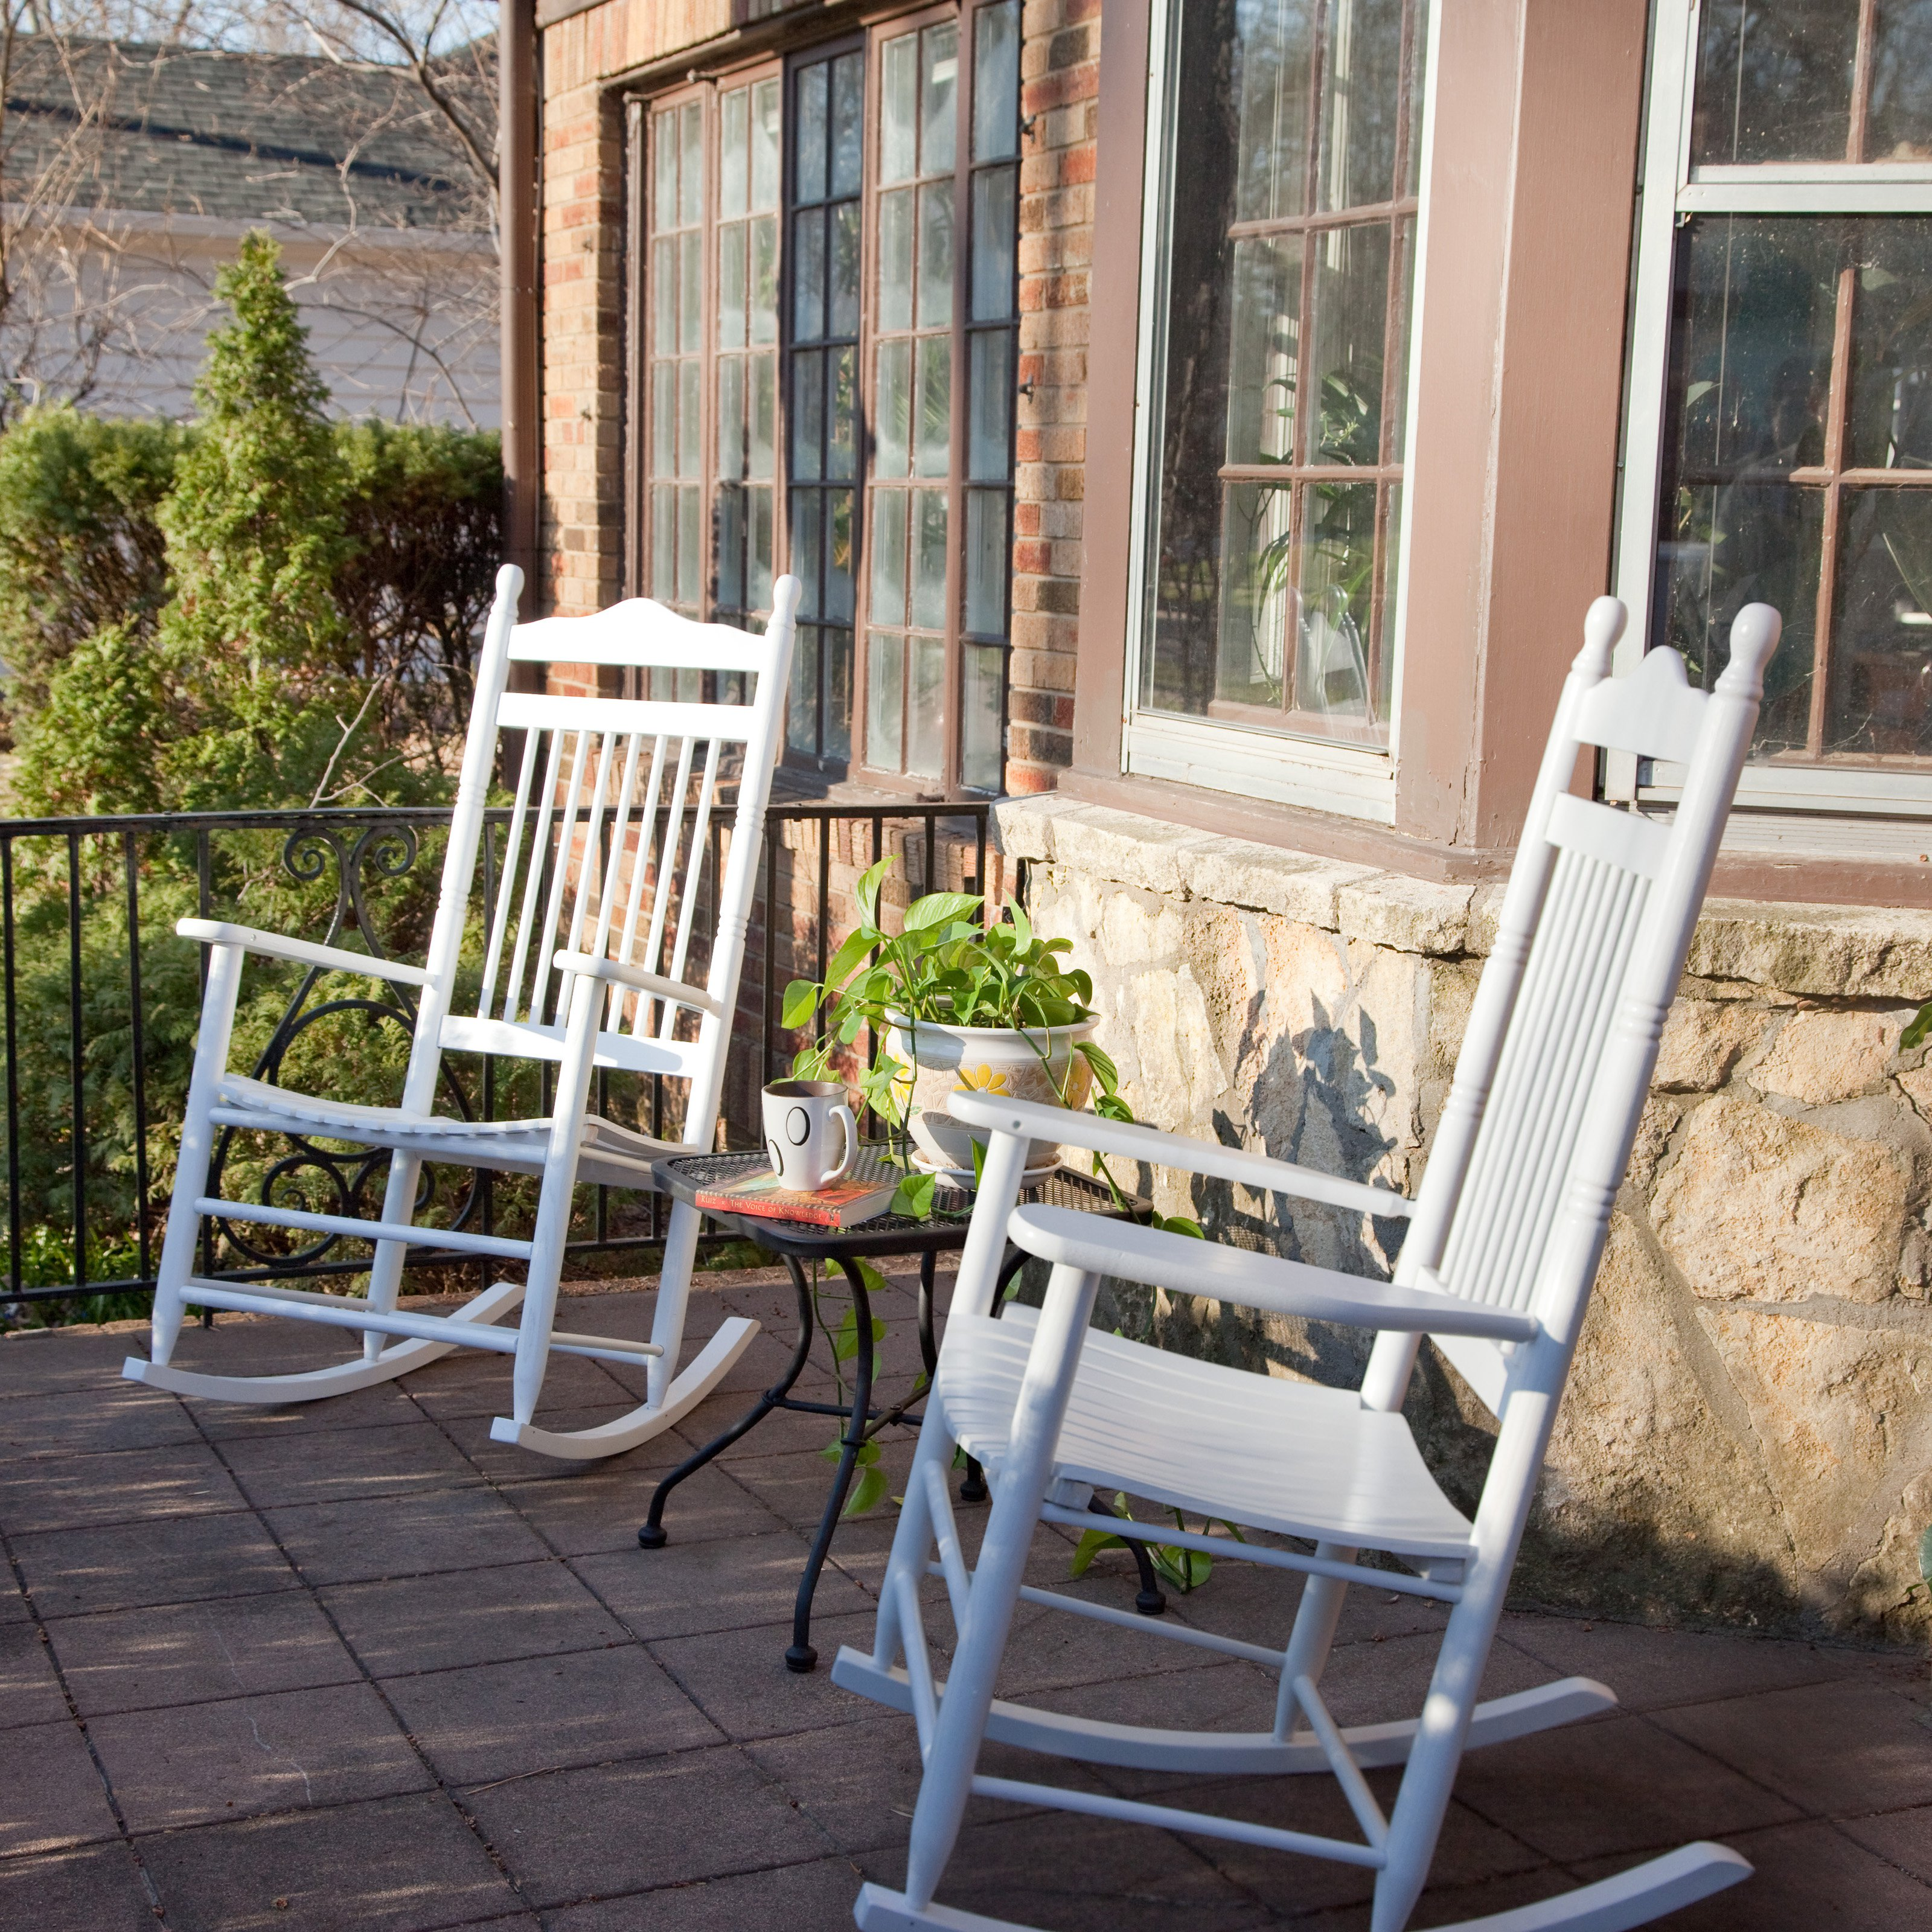 Dixie Seating Indoor/Outdoor Spindle Rocking Chairs - White - Set of 2